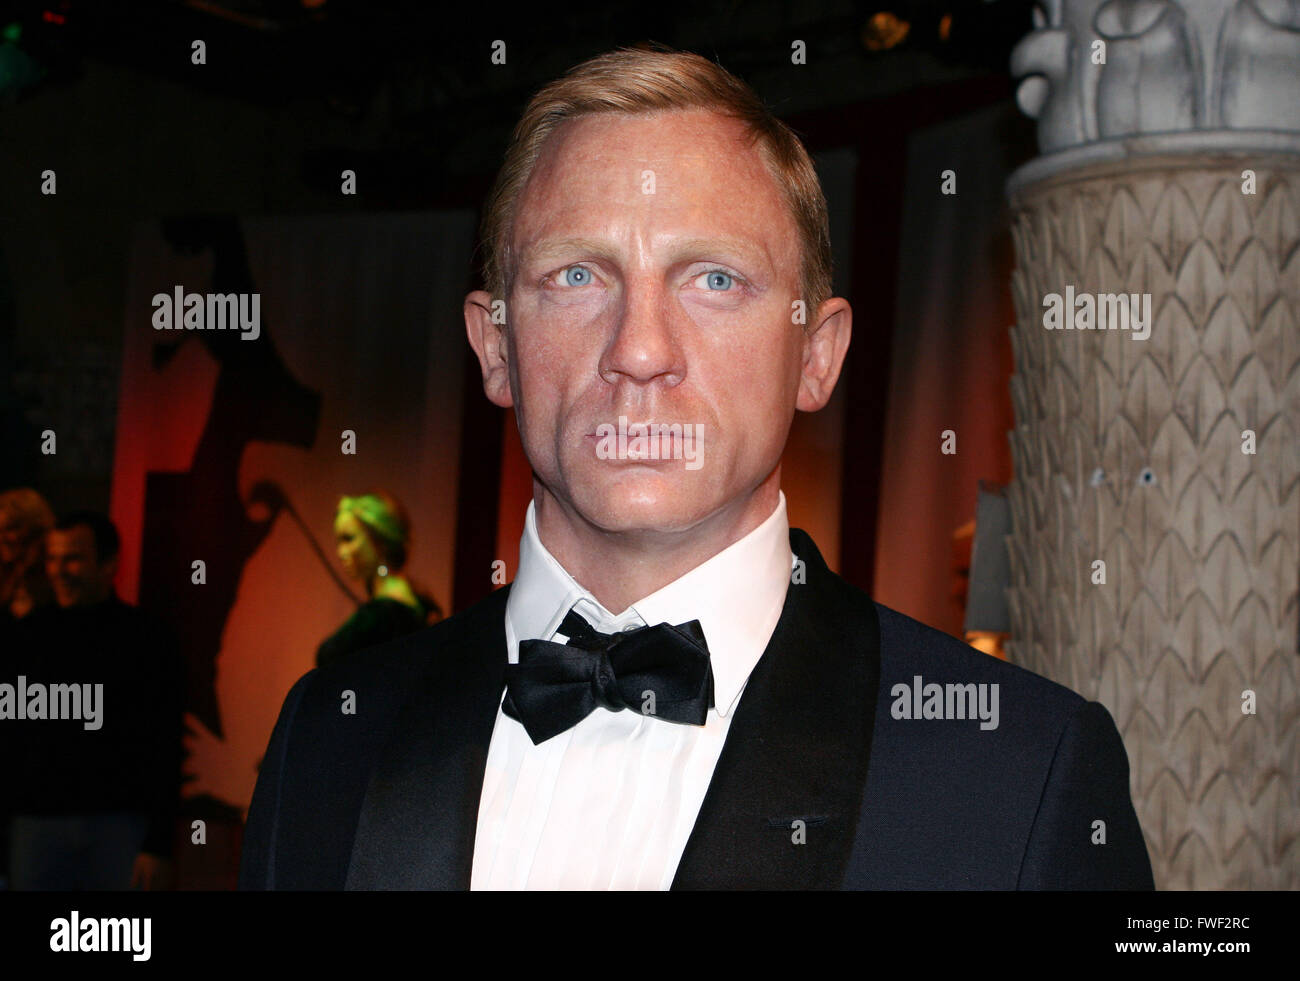 Daniel Craig - Celebrity wax figure at Madame Tussaud's Wax Museum at 42nd Street in New York City. USA. please - Stock Image